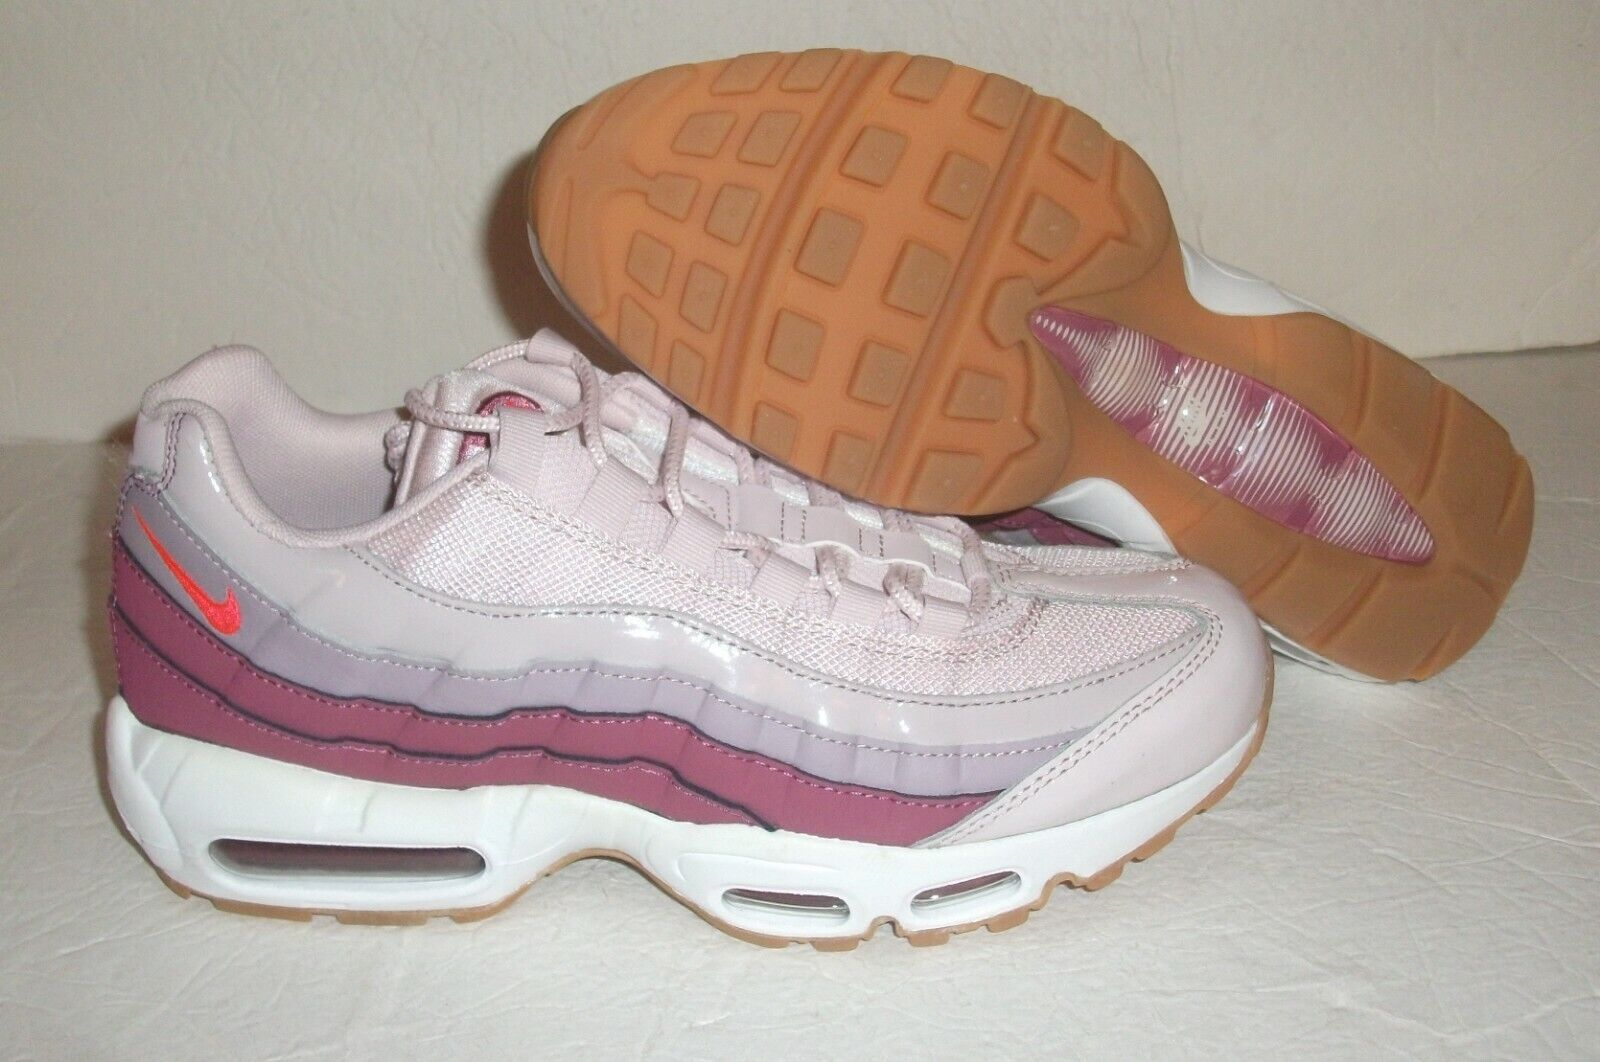 New Nike Air Max 95 Running, Women's Size 10, Barely pink Wine, 307960-603